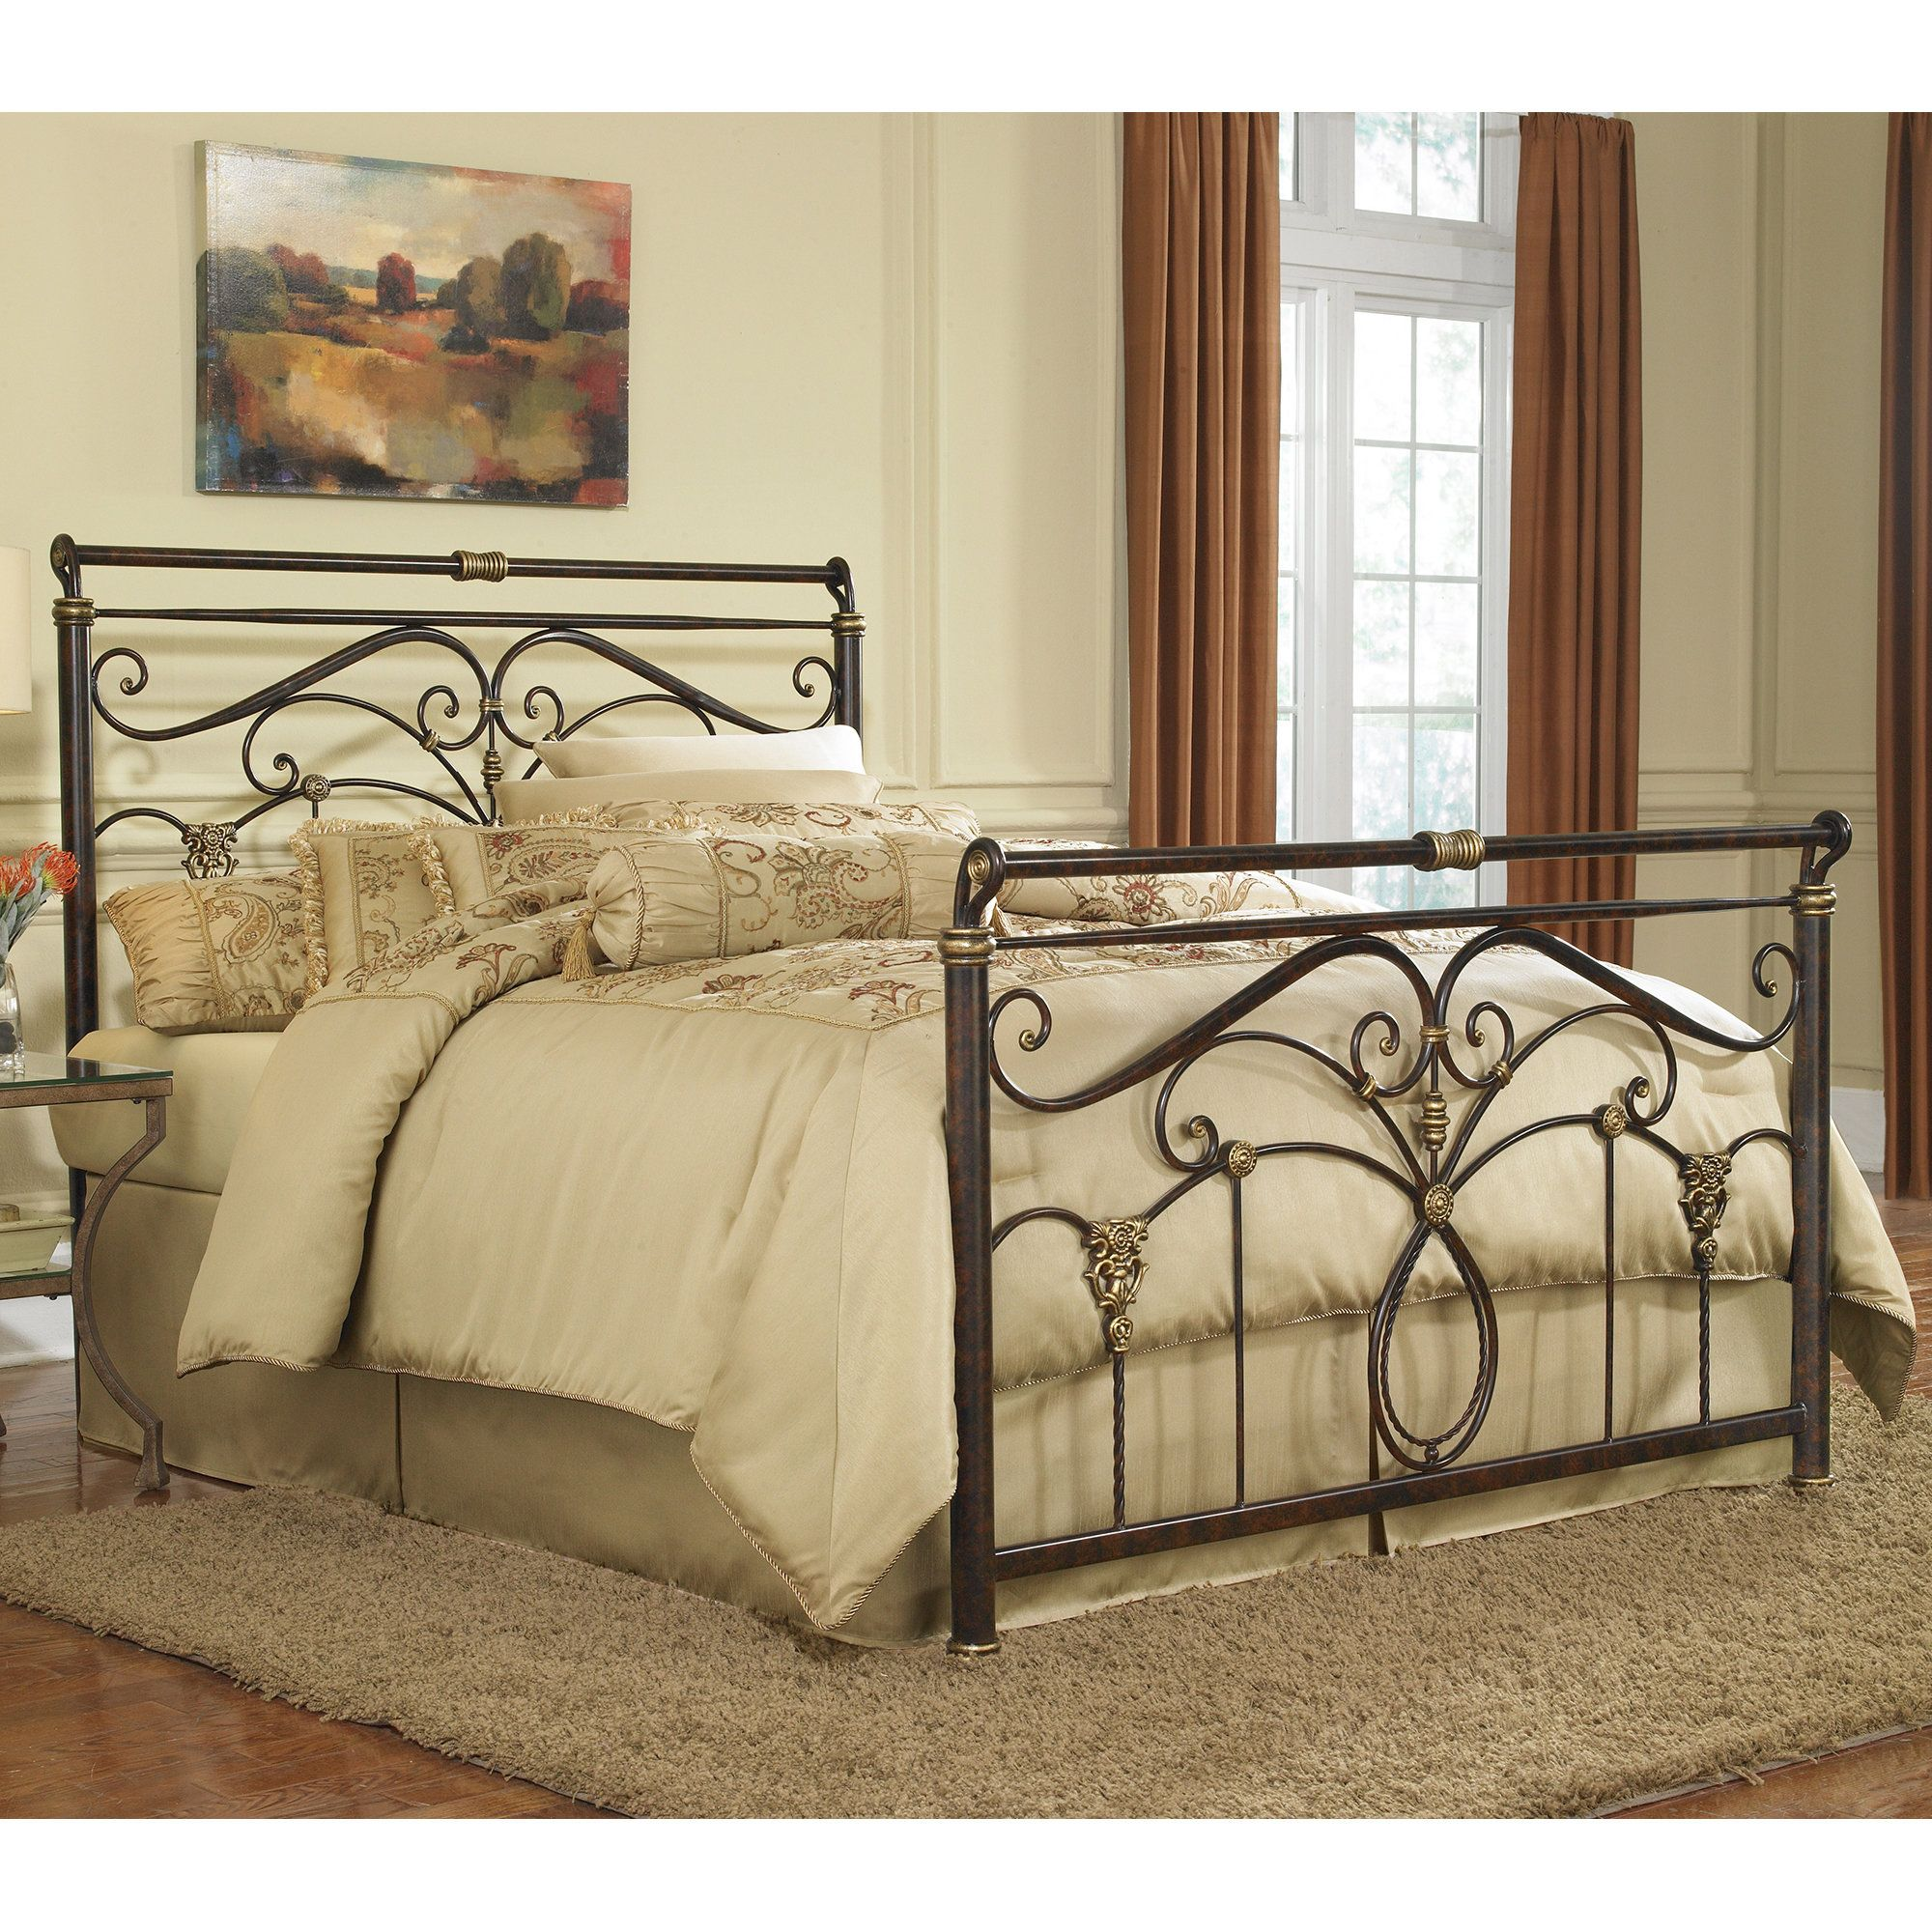 Bette Panel Bed   Products   Pinterest